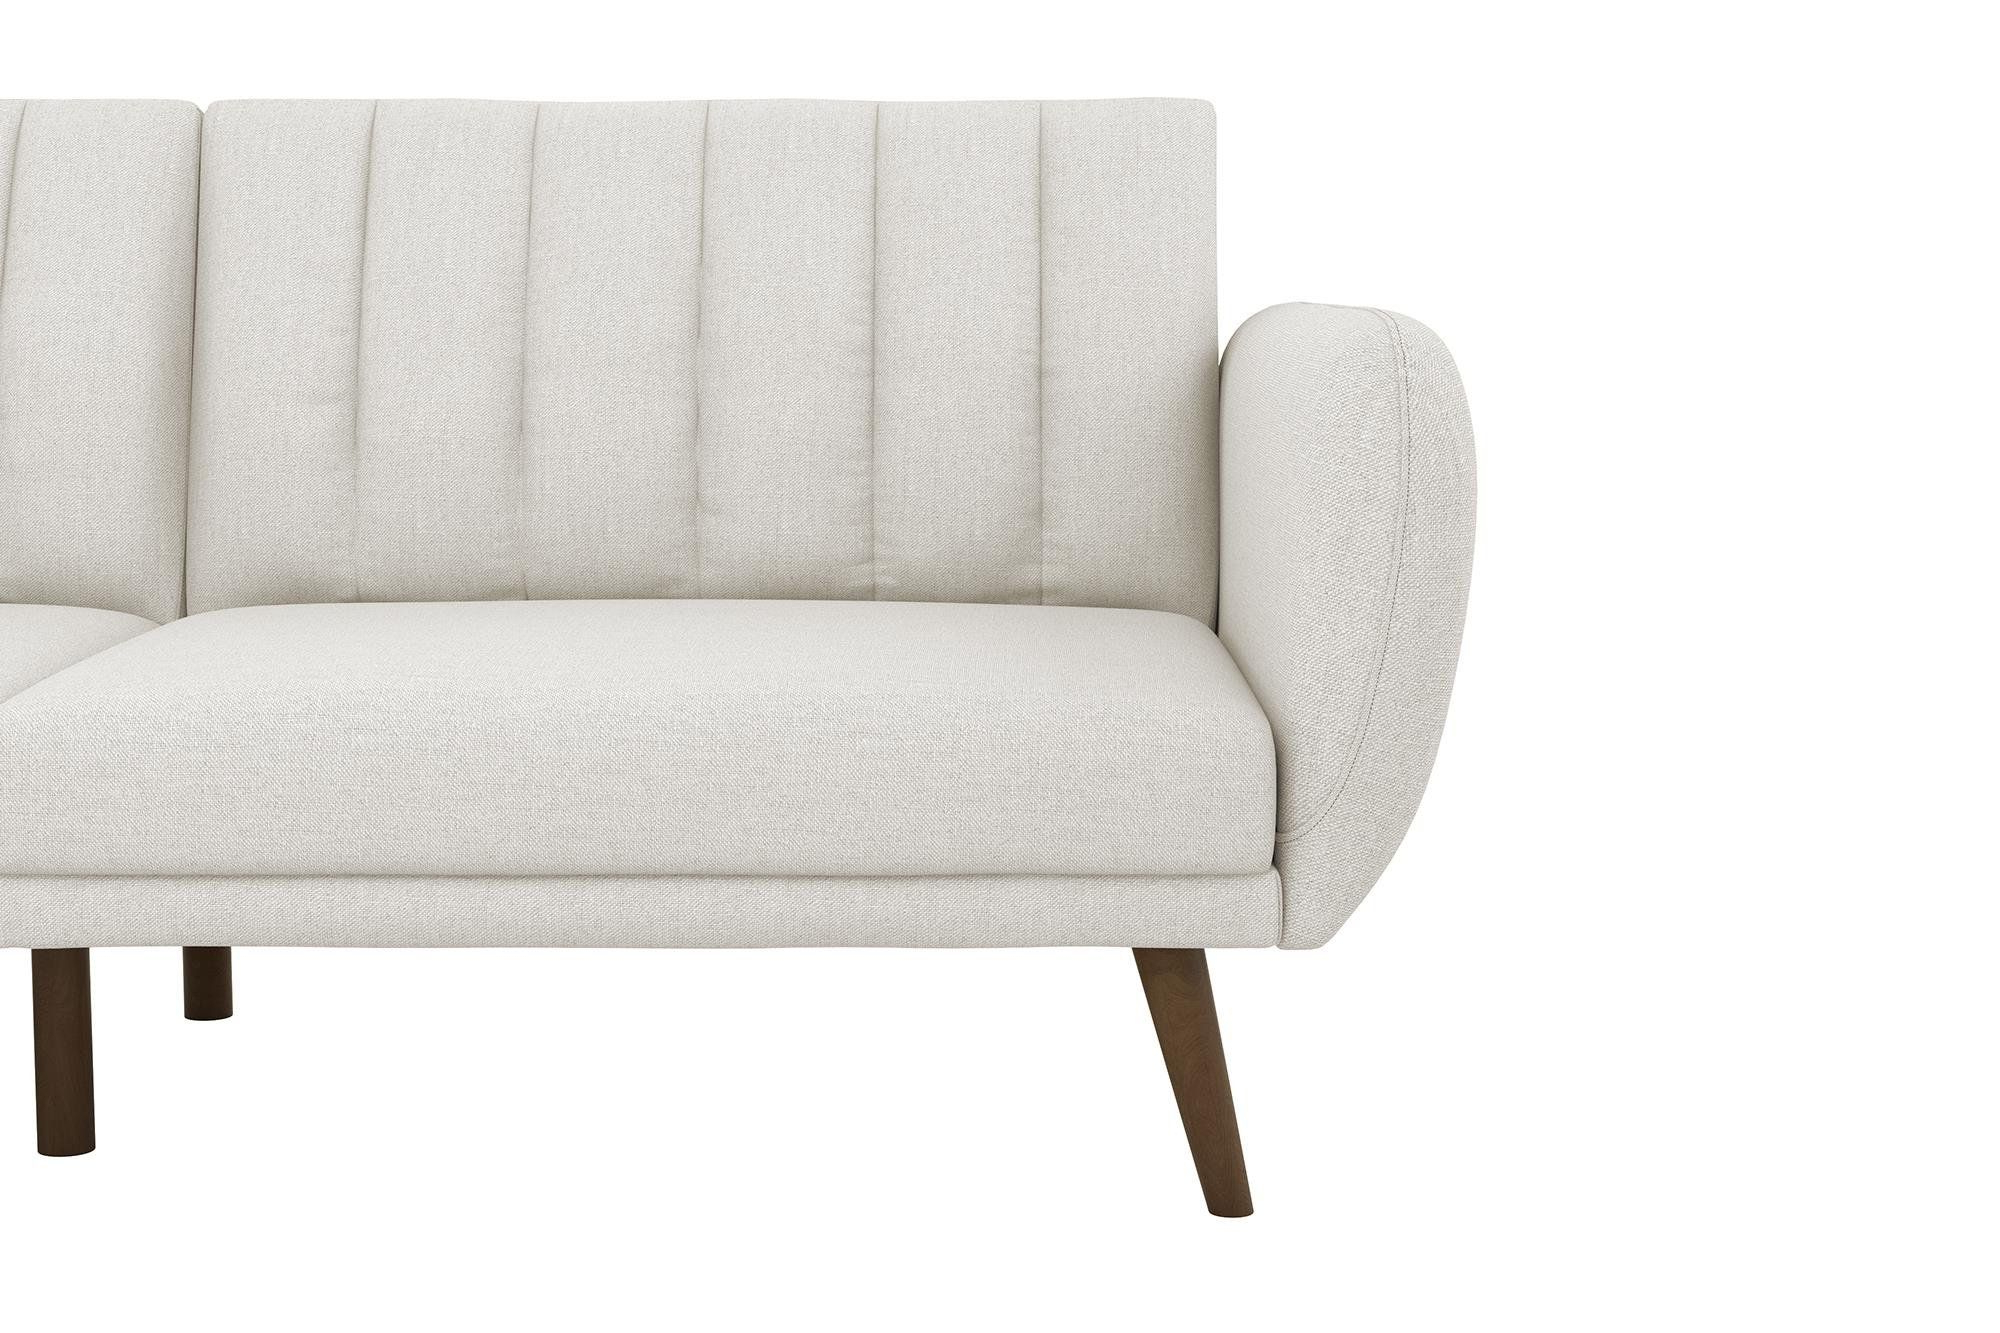 Widely Used Novogratz Brittany Sofa Futon Premium Linen Upholstery And Inside Brittany Sectional Futon Sofas (View 19 of 25)